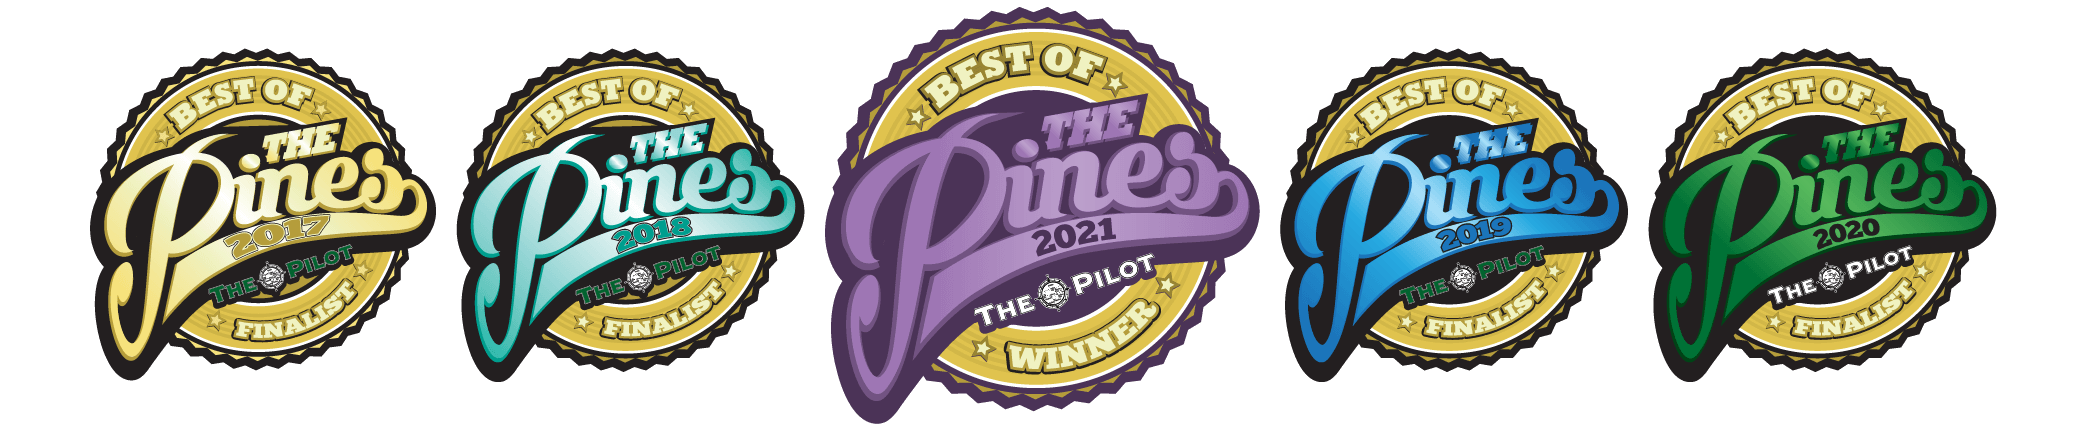 Best of The Pines Awards